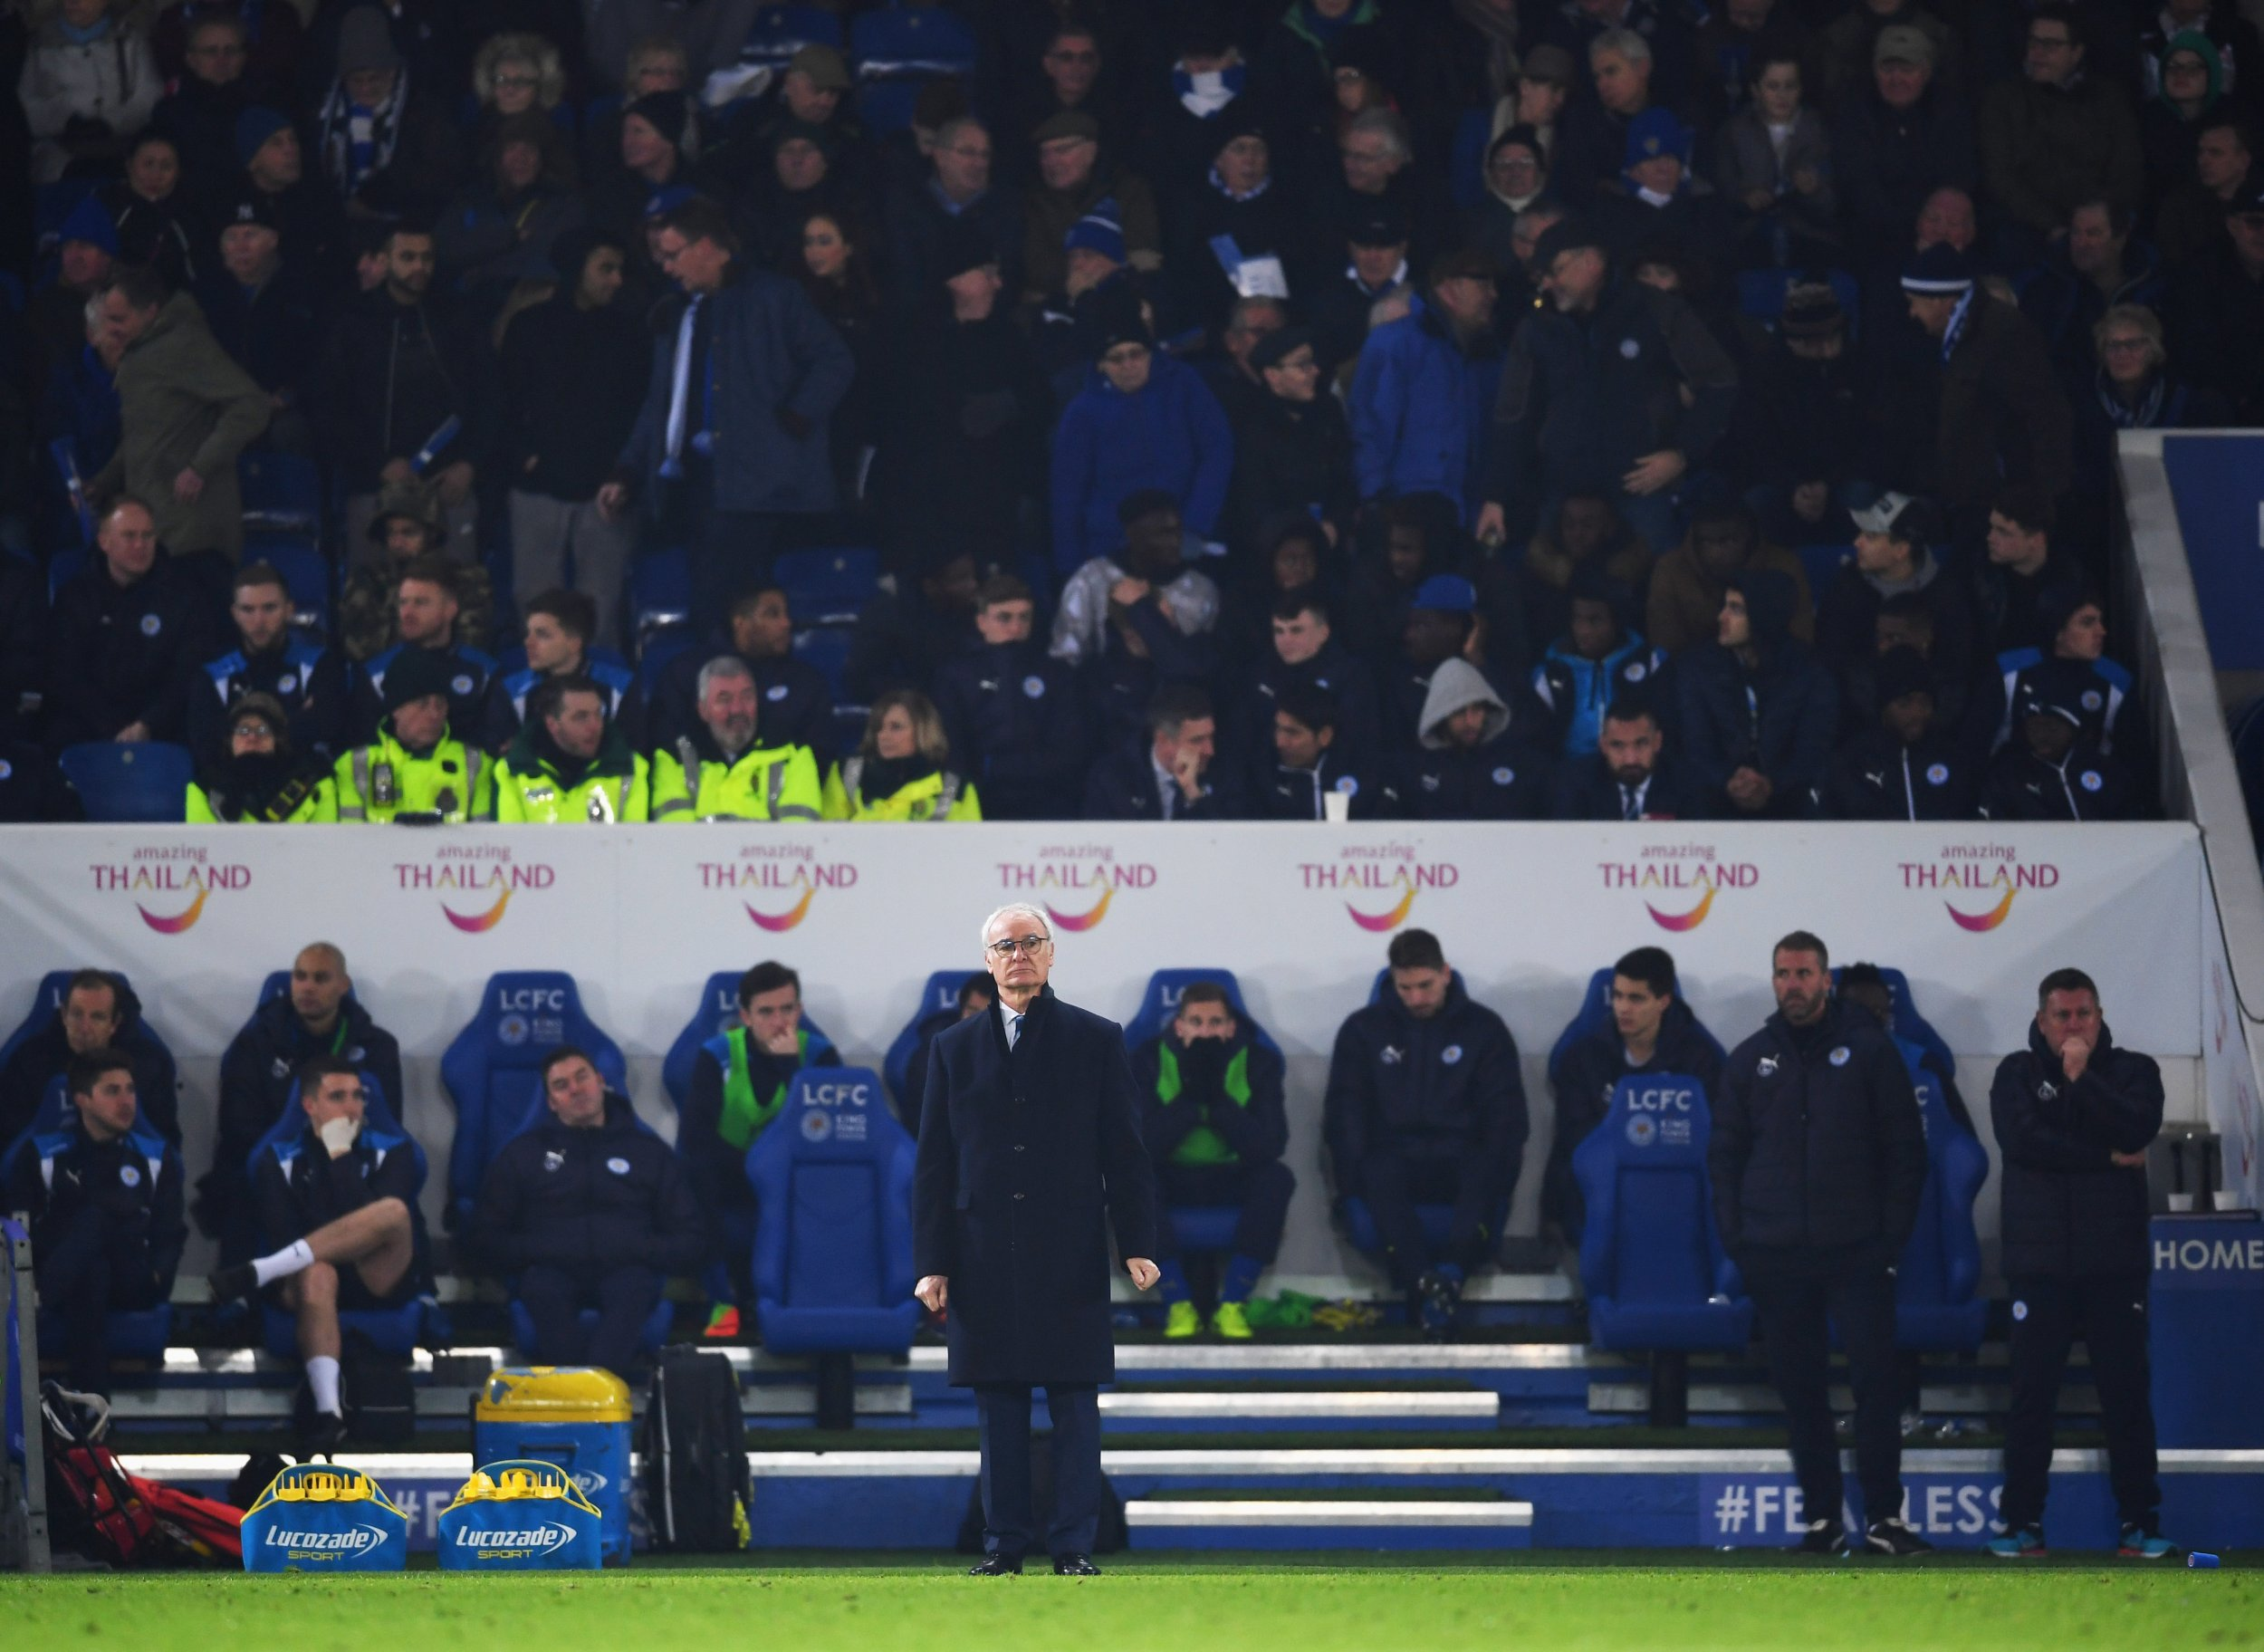 Leicester City manager Claudio Ranieri, front center.